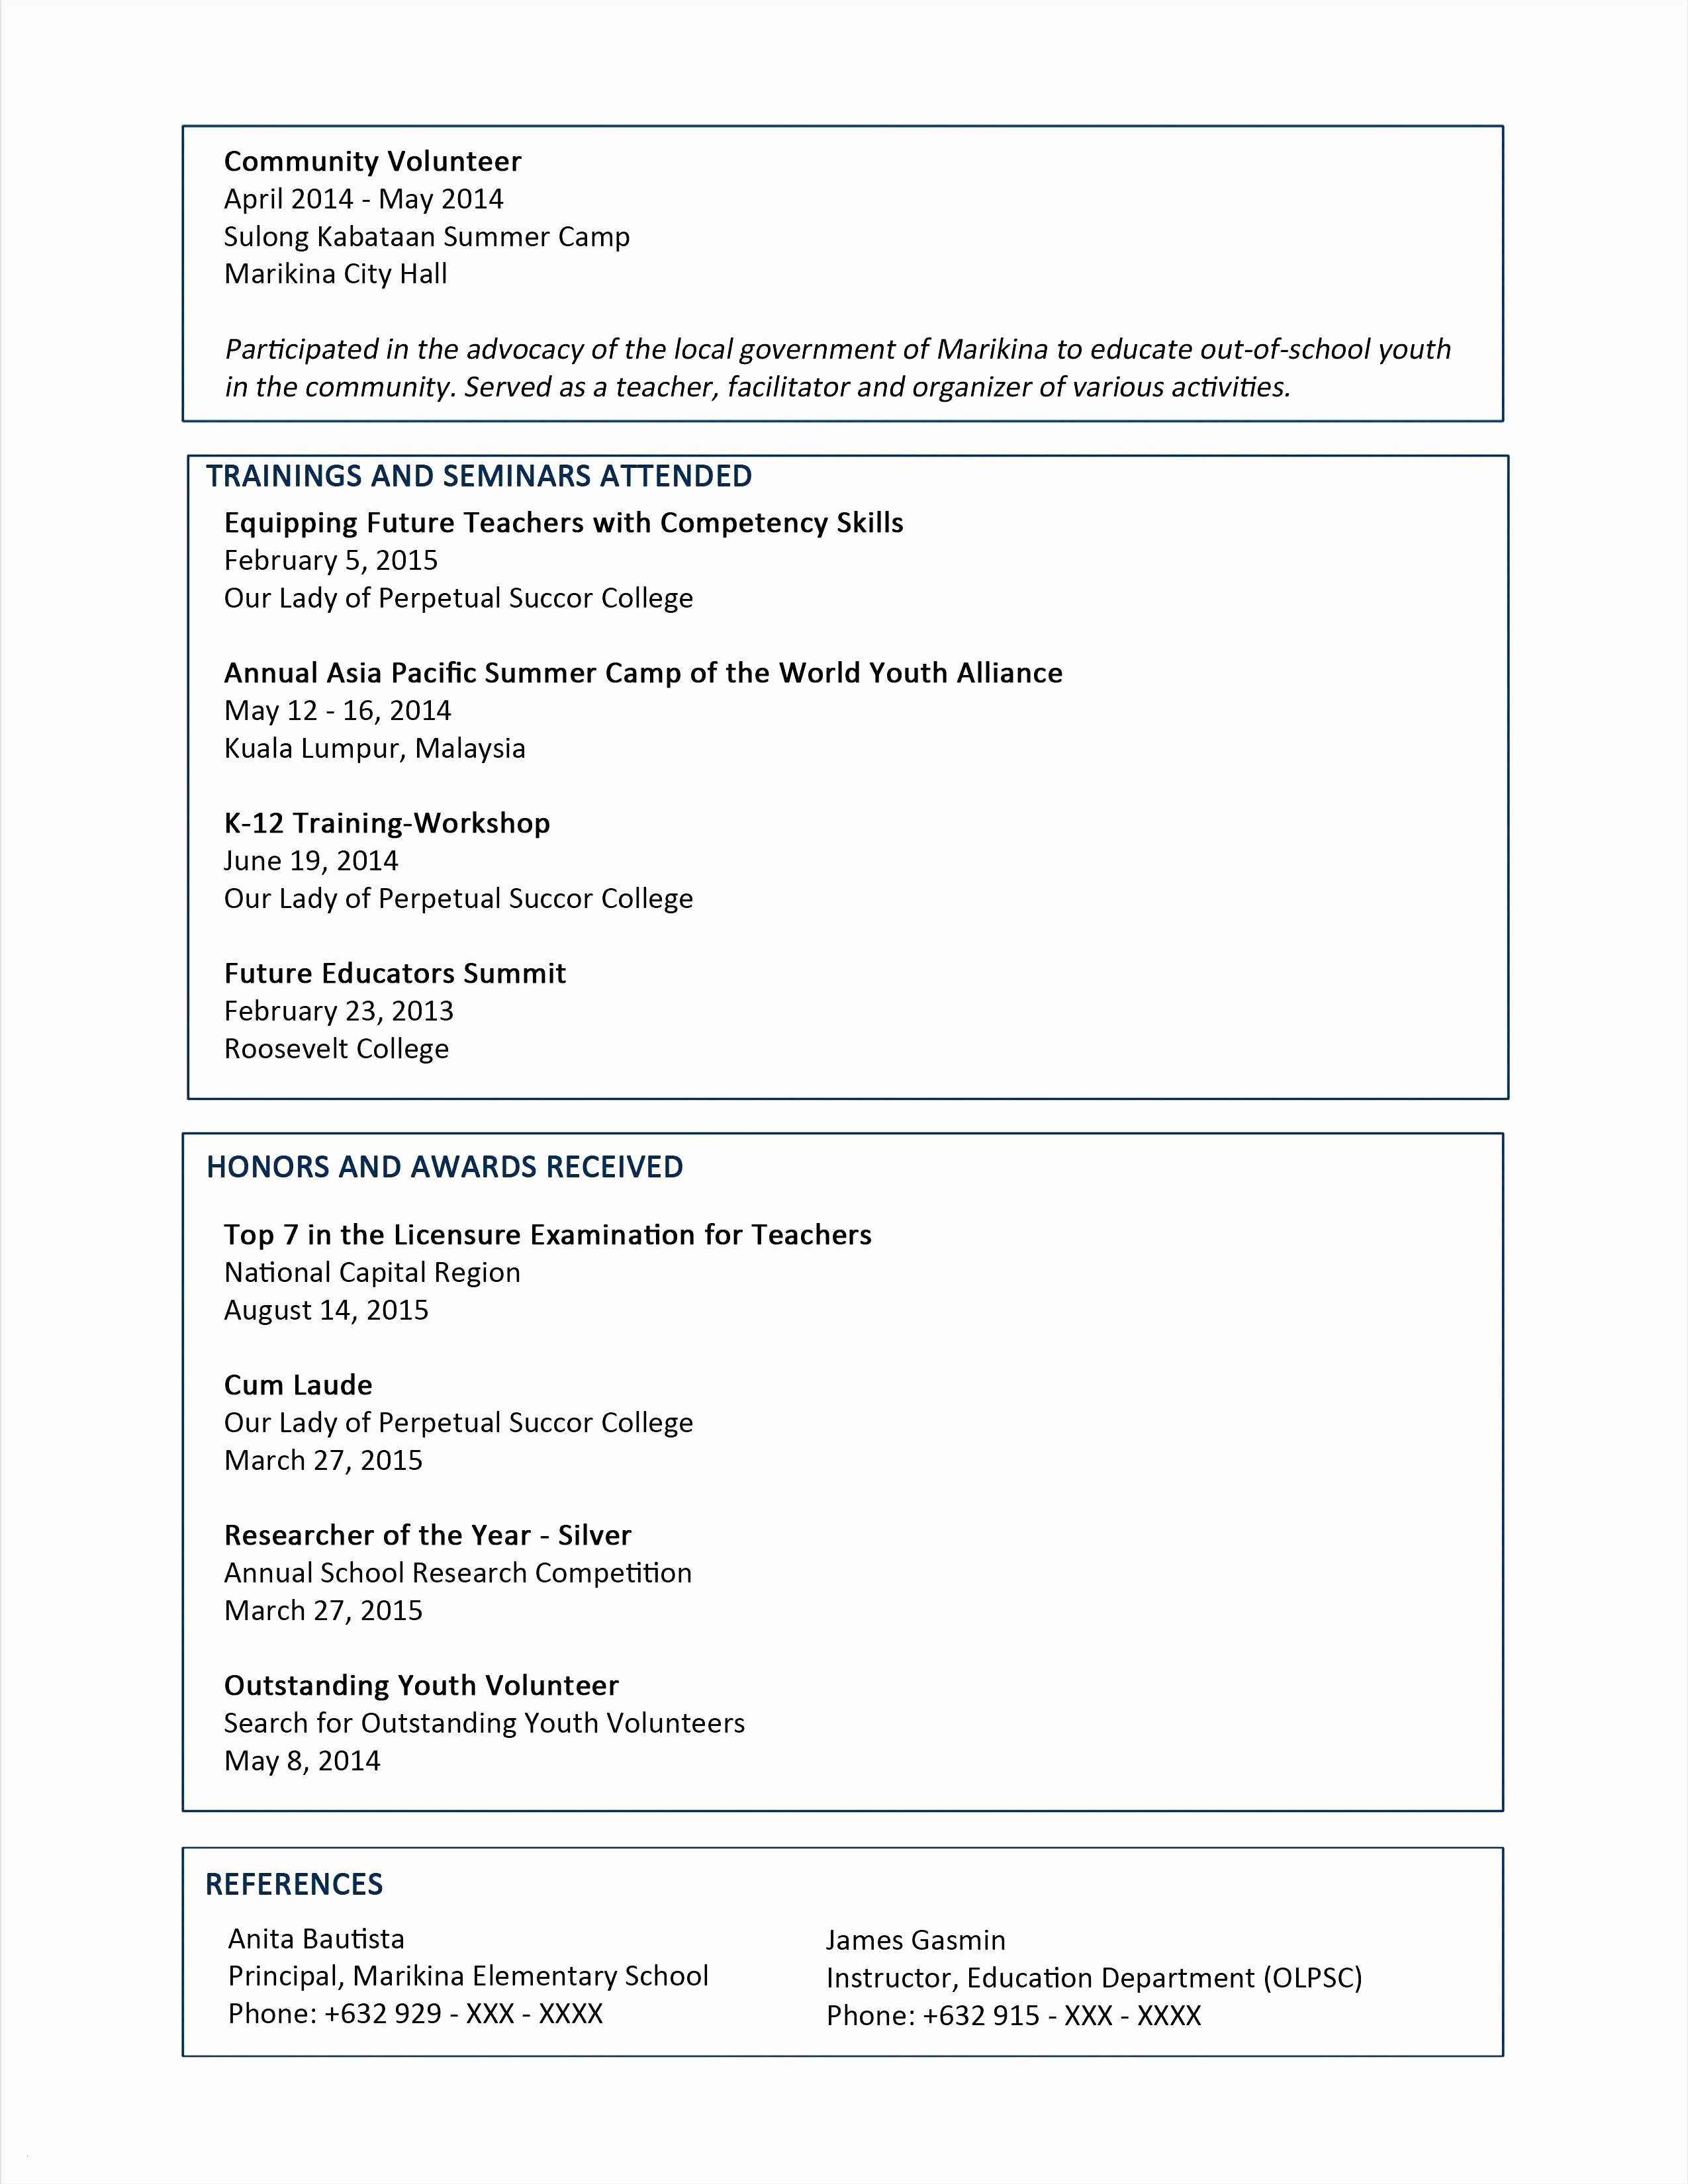 Reference Resume Templates Microsoft Word 2013